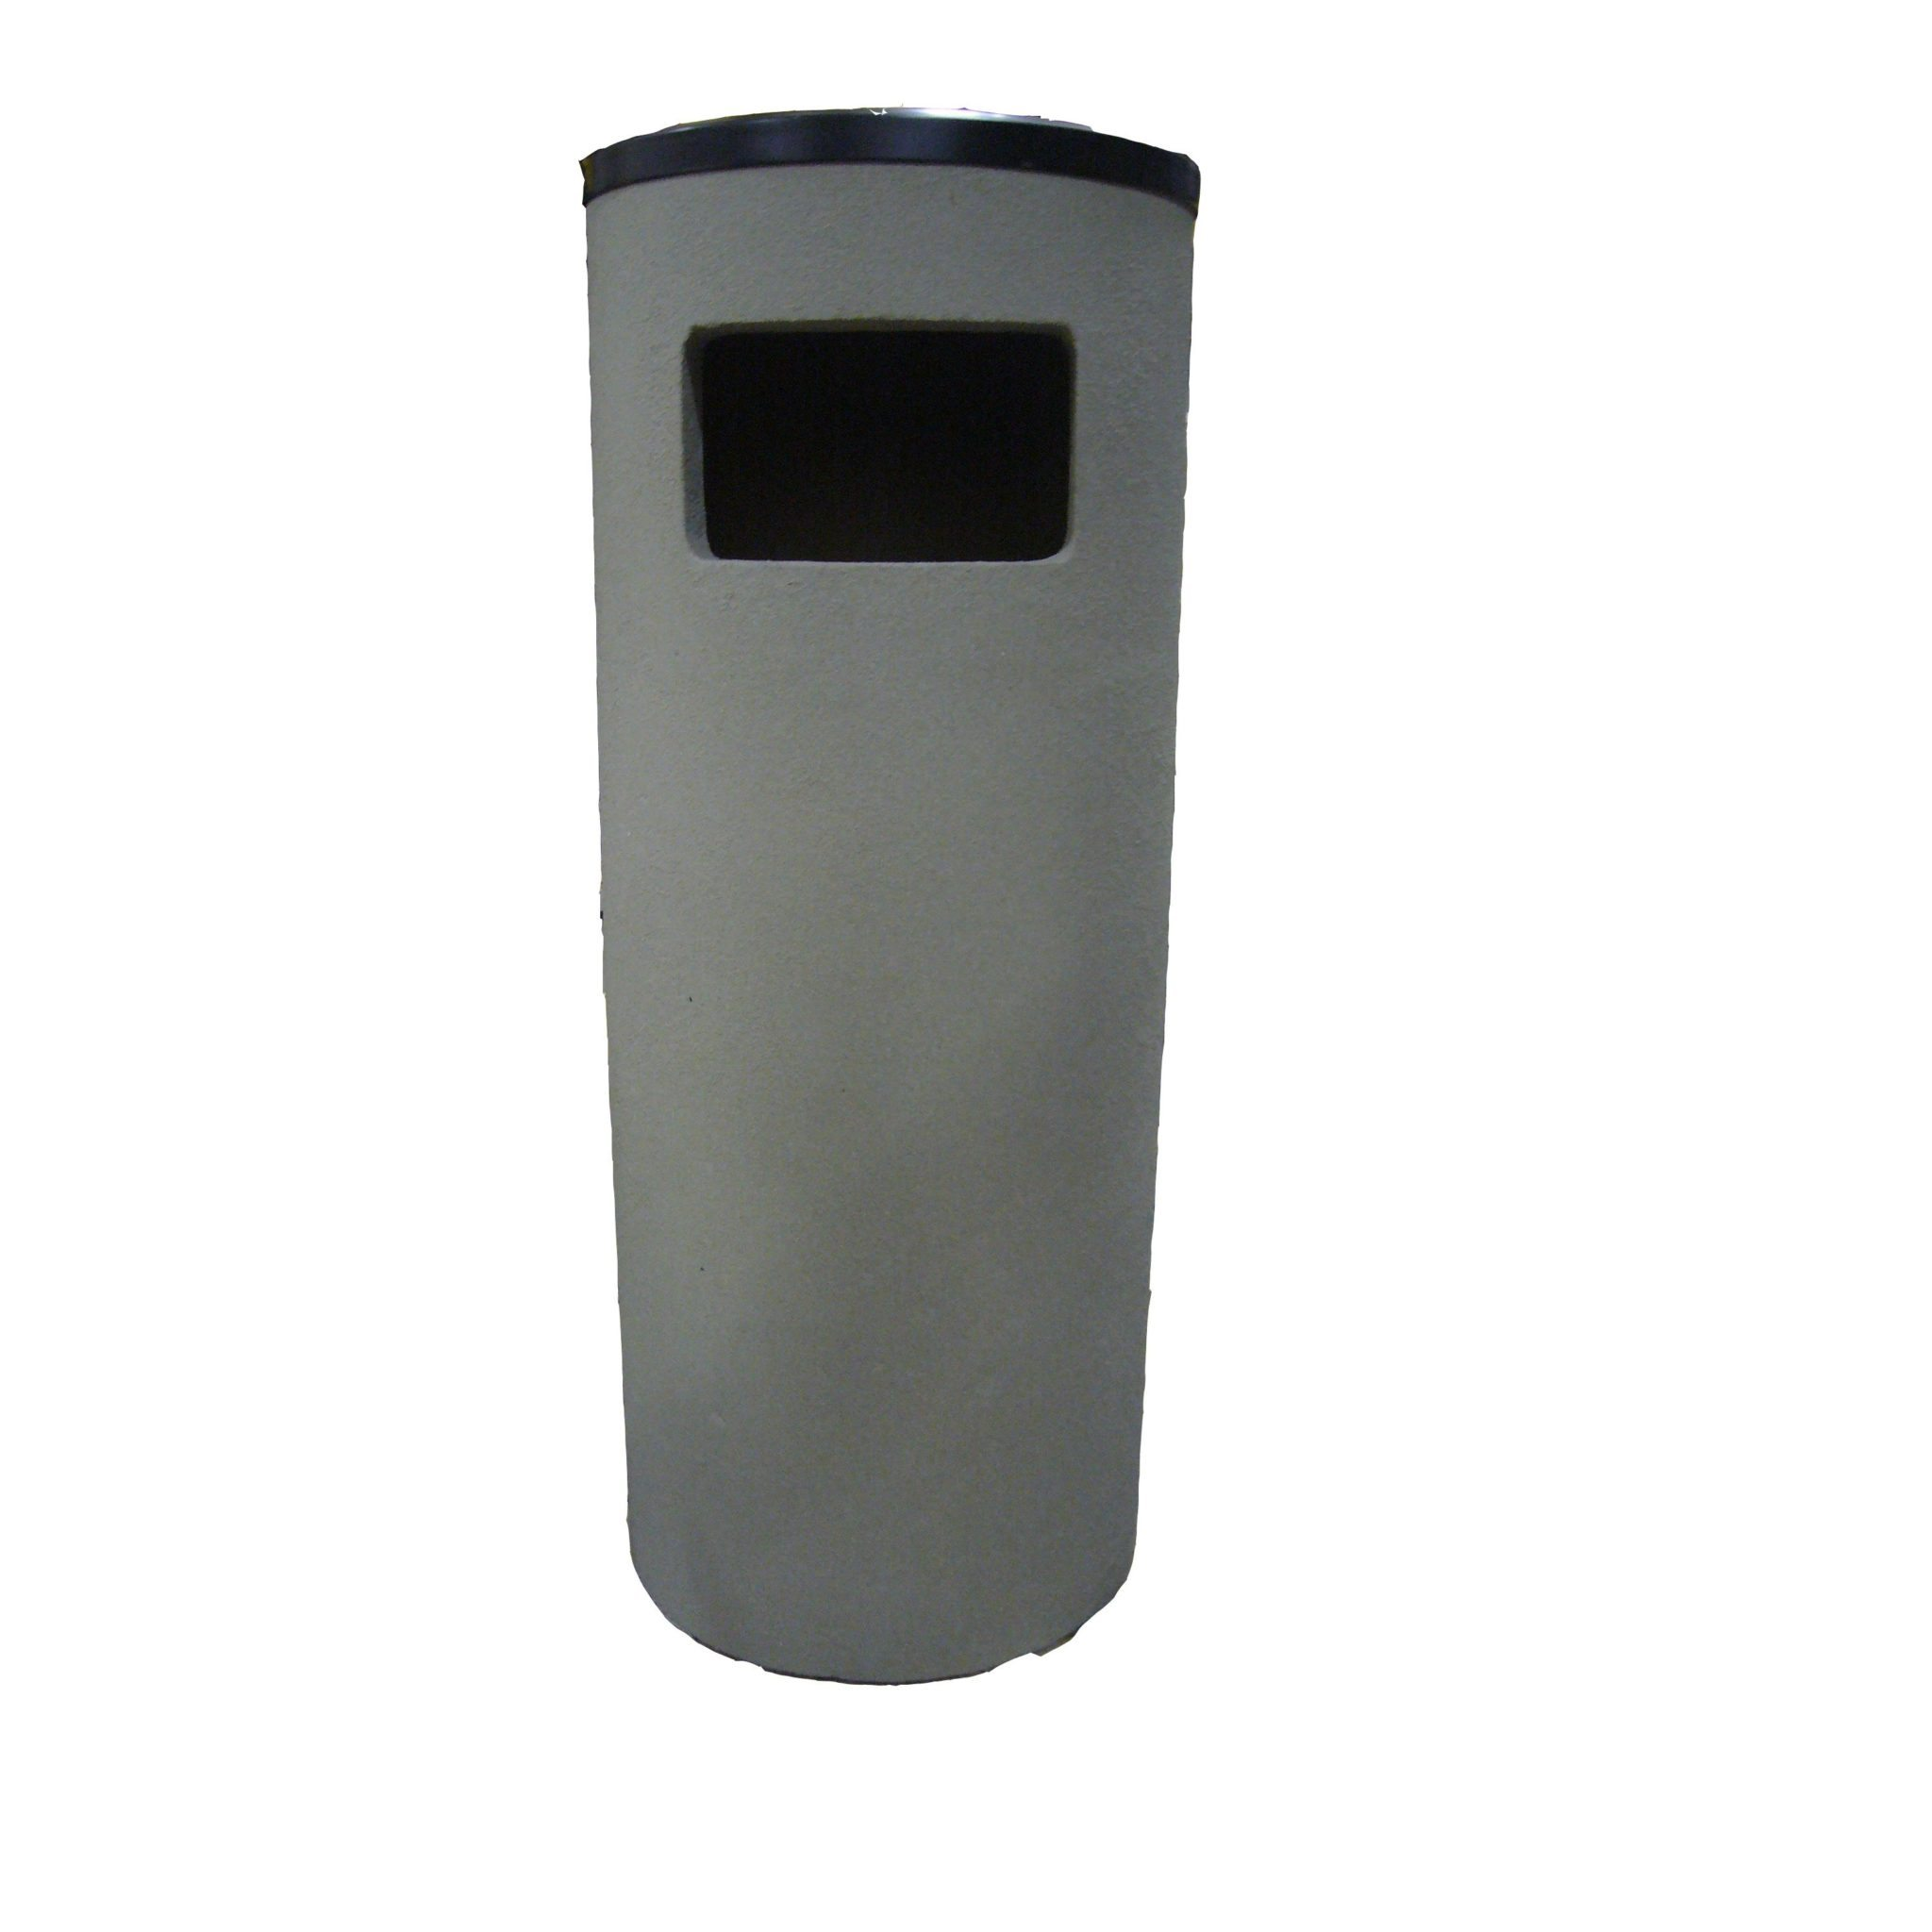 38 Inch Round Concrete Combination Waste Receptacle & Ashtray